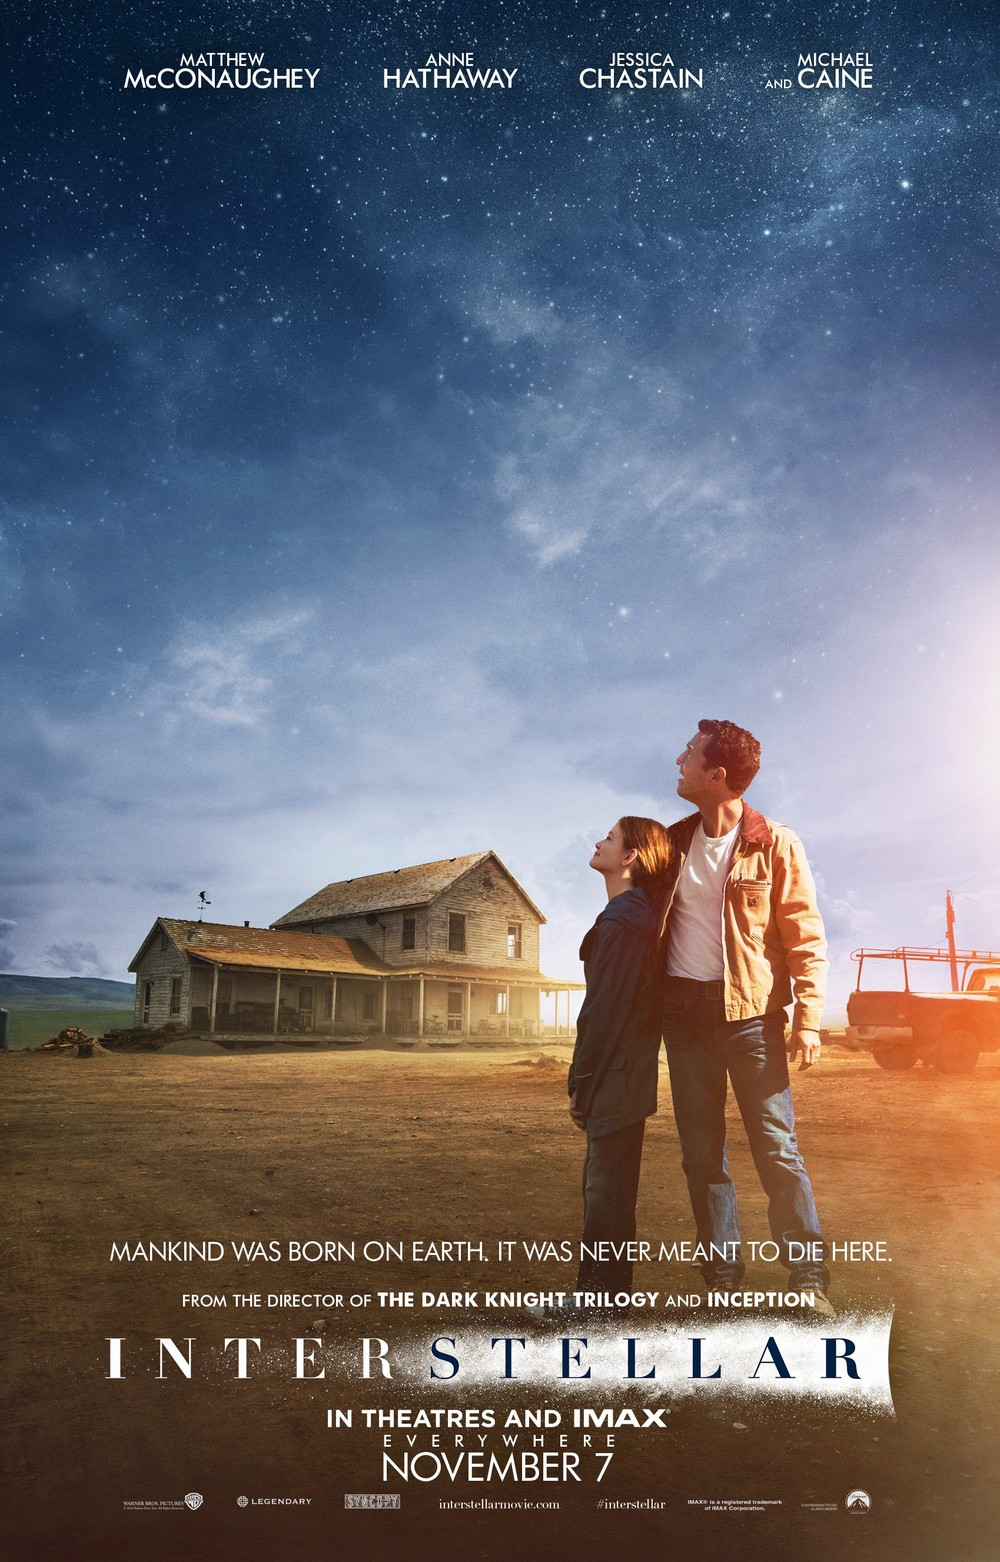 Interstellar release date